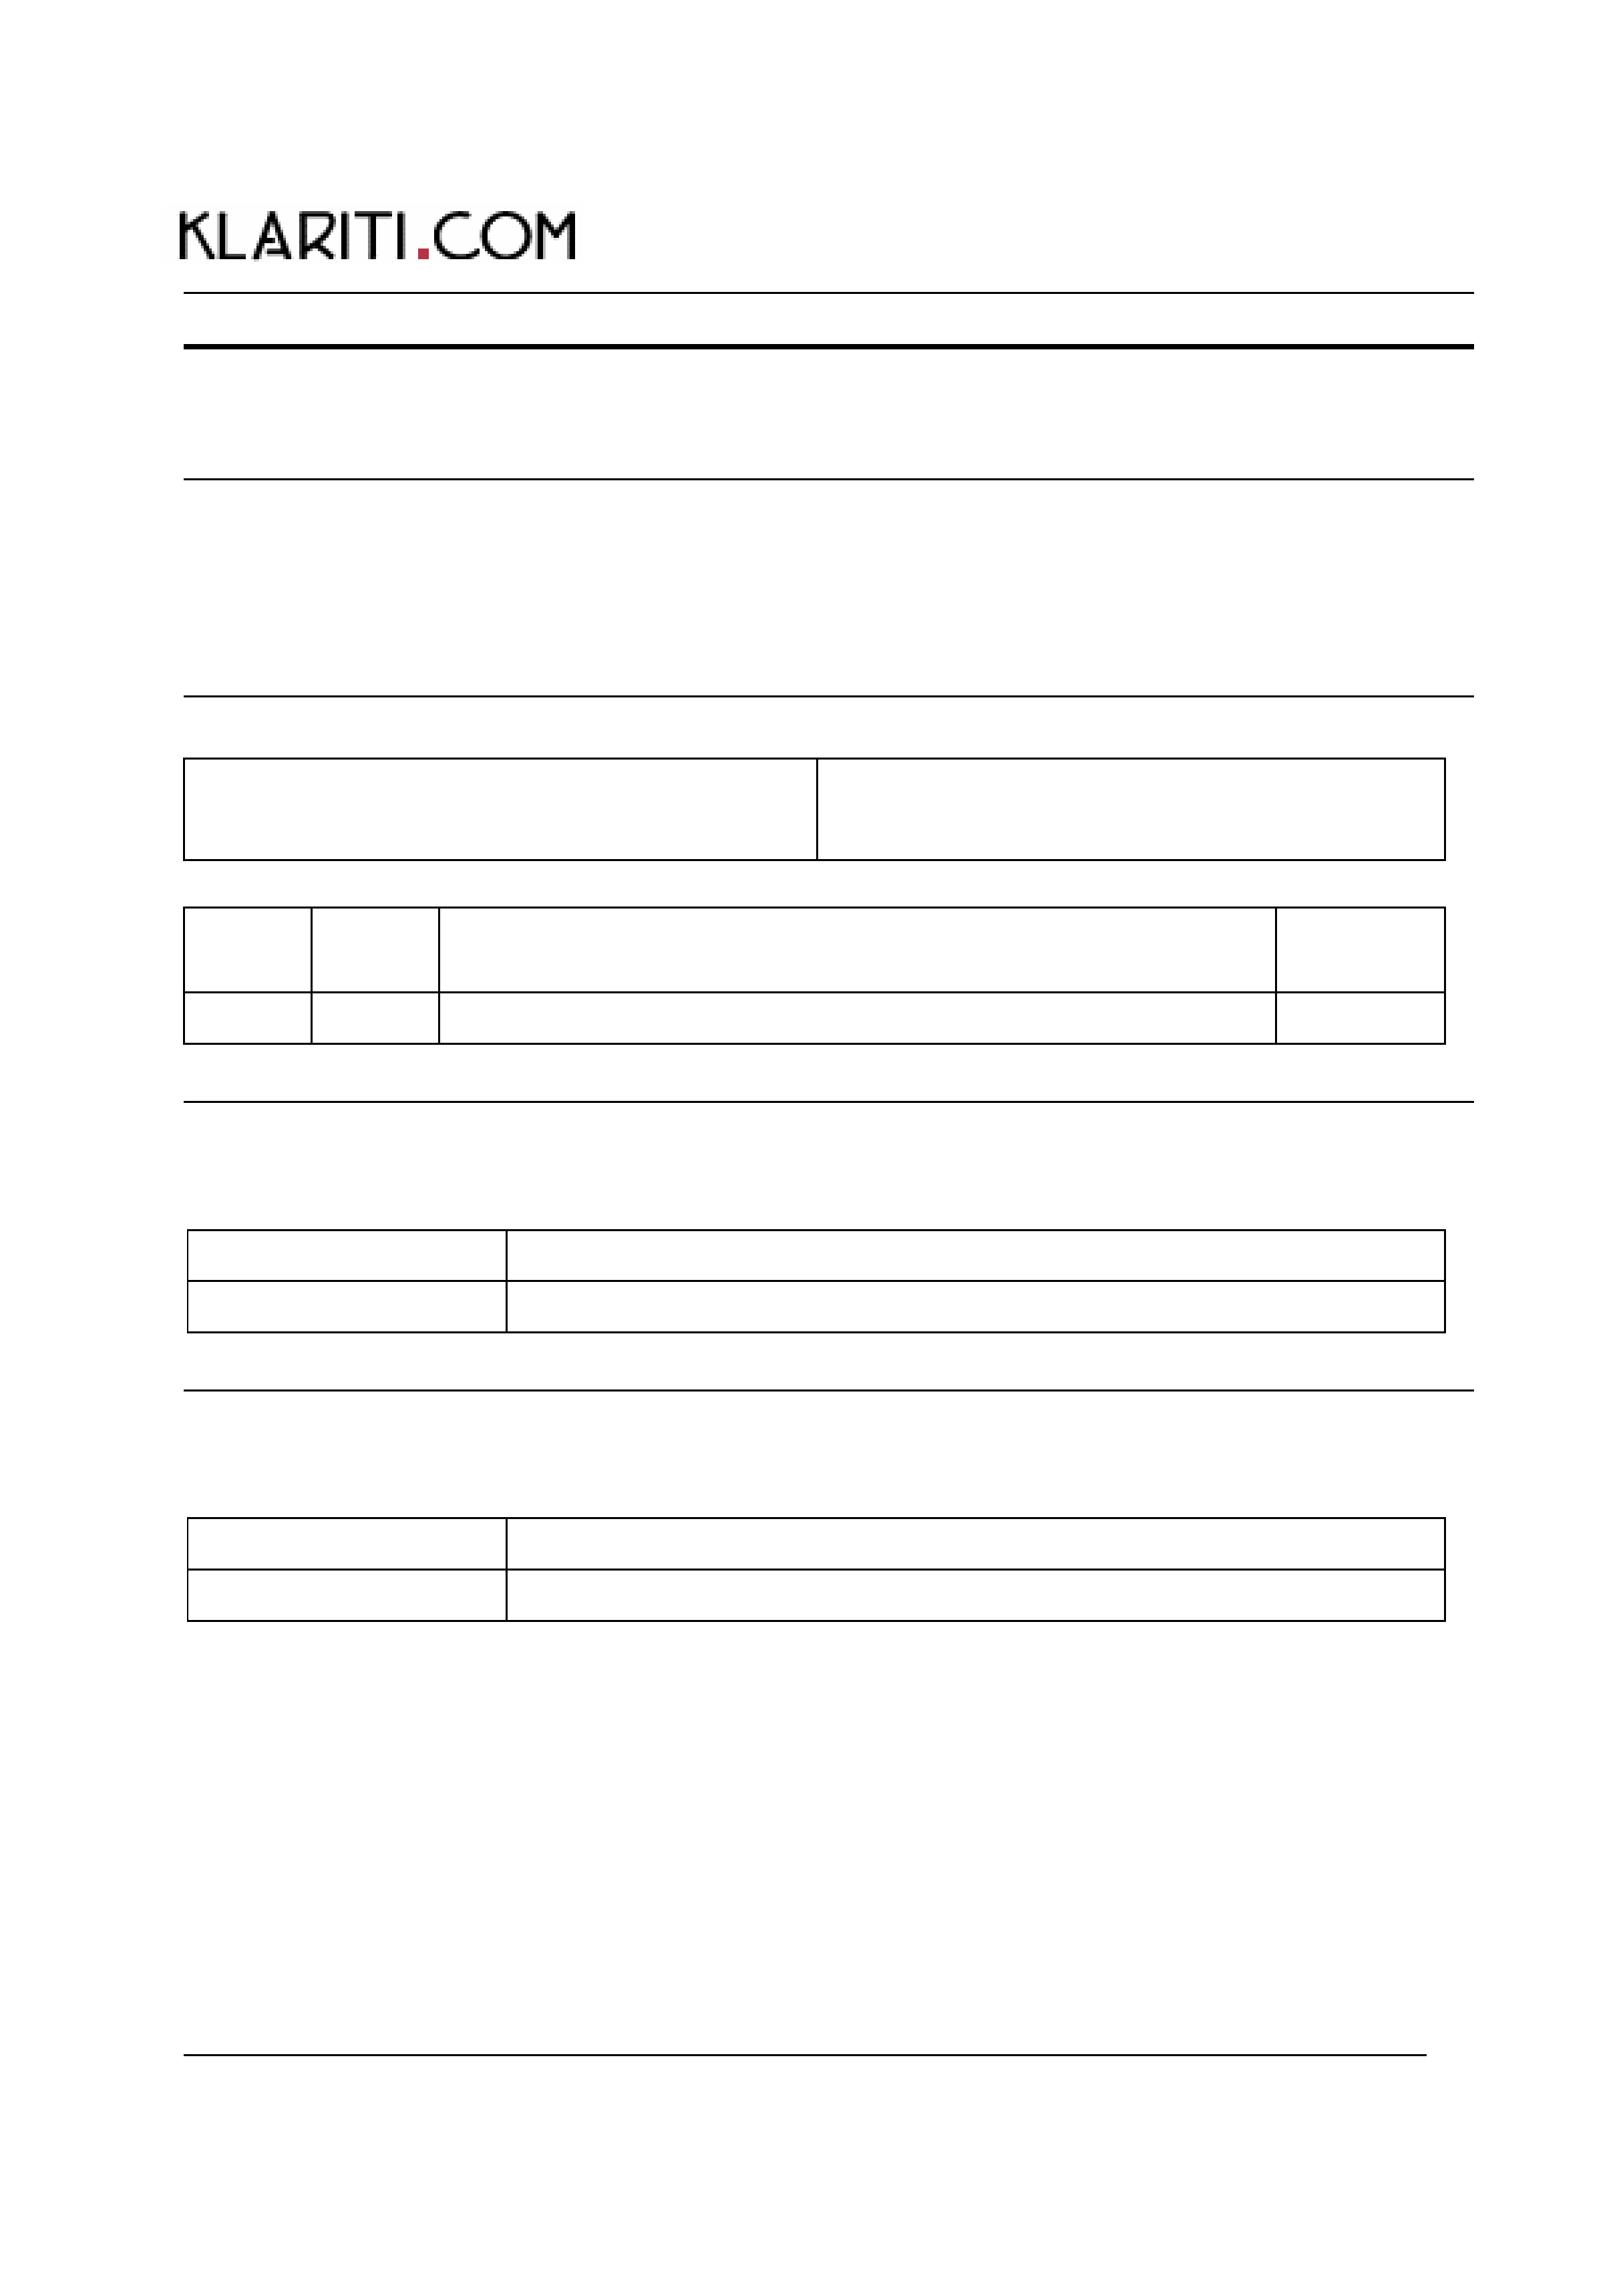 Standard Operating Procedure Template Free Download